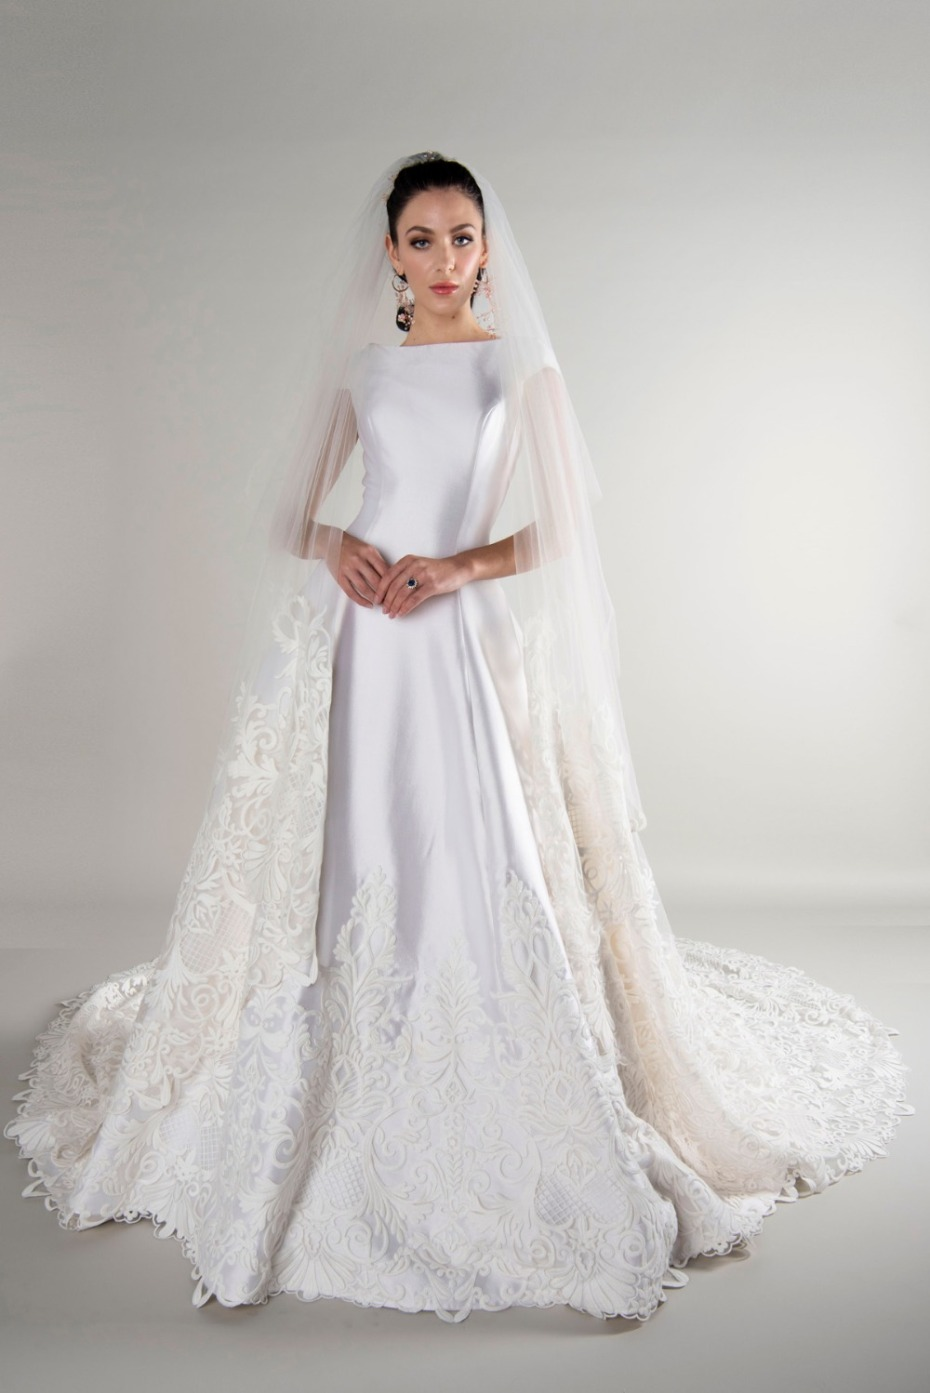 Yumi Katsura Fall 2019 Bridal Collection